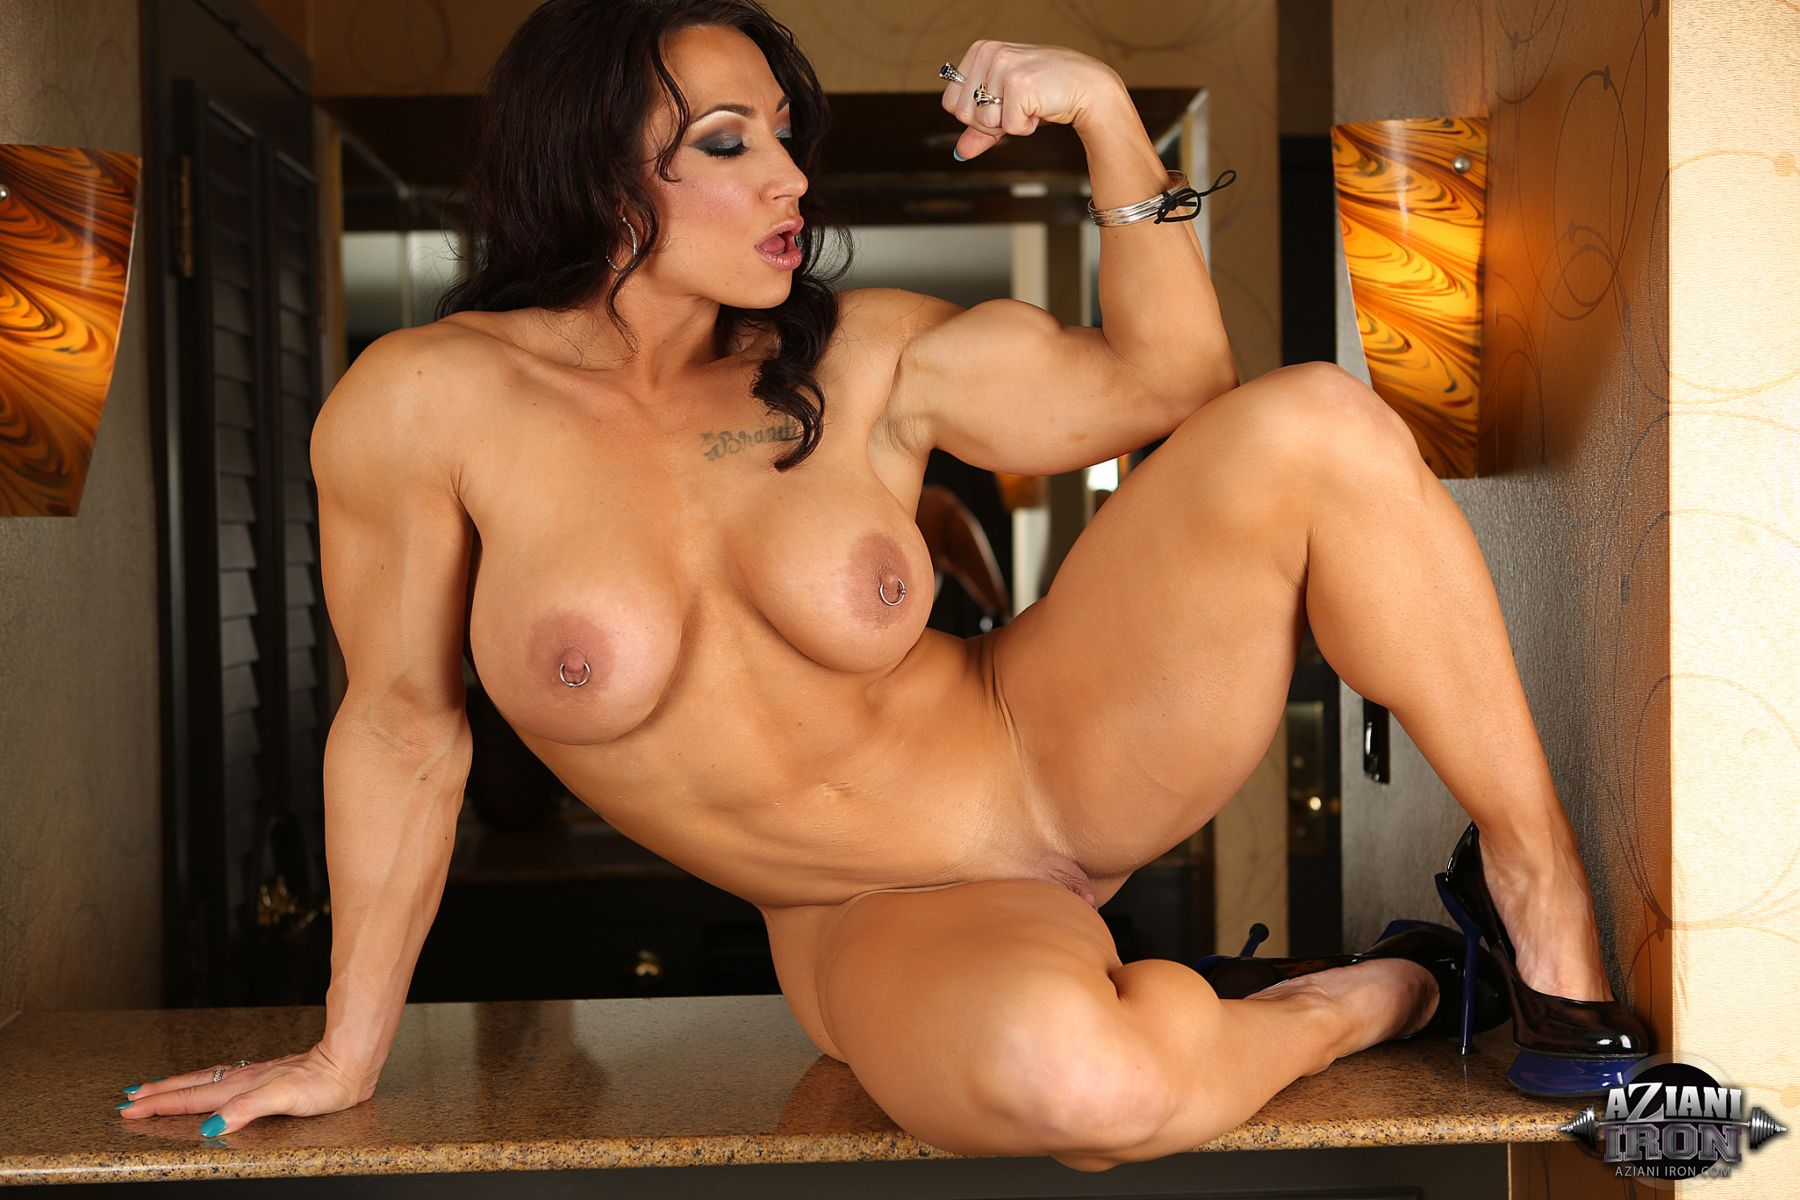 Amber michaels pec flex and tit shaking 5